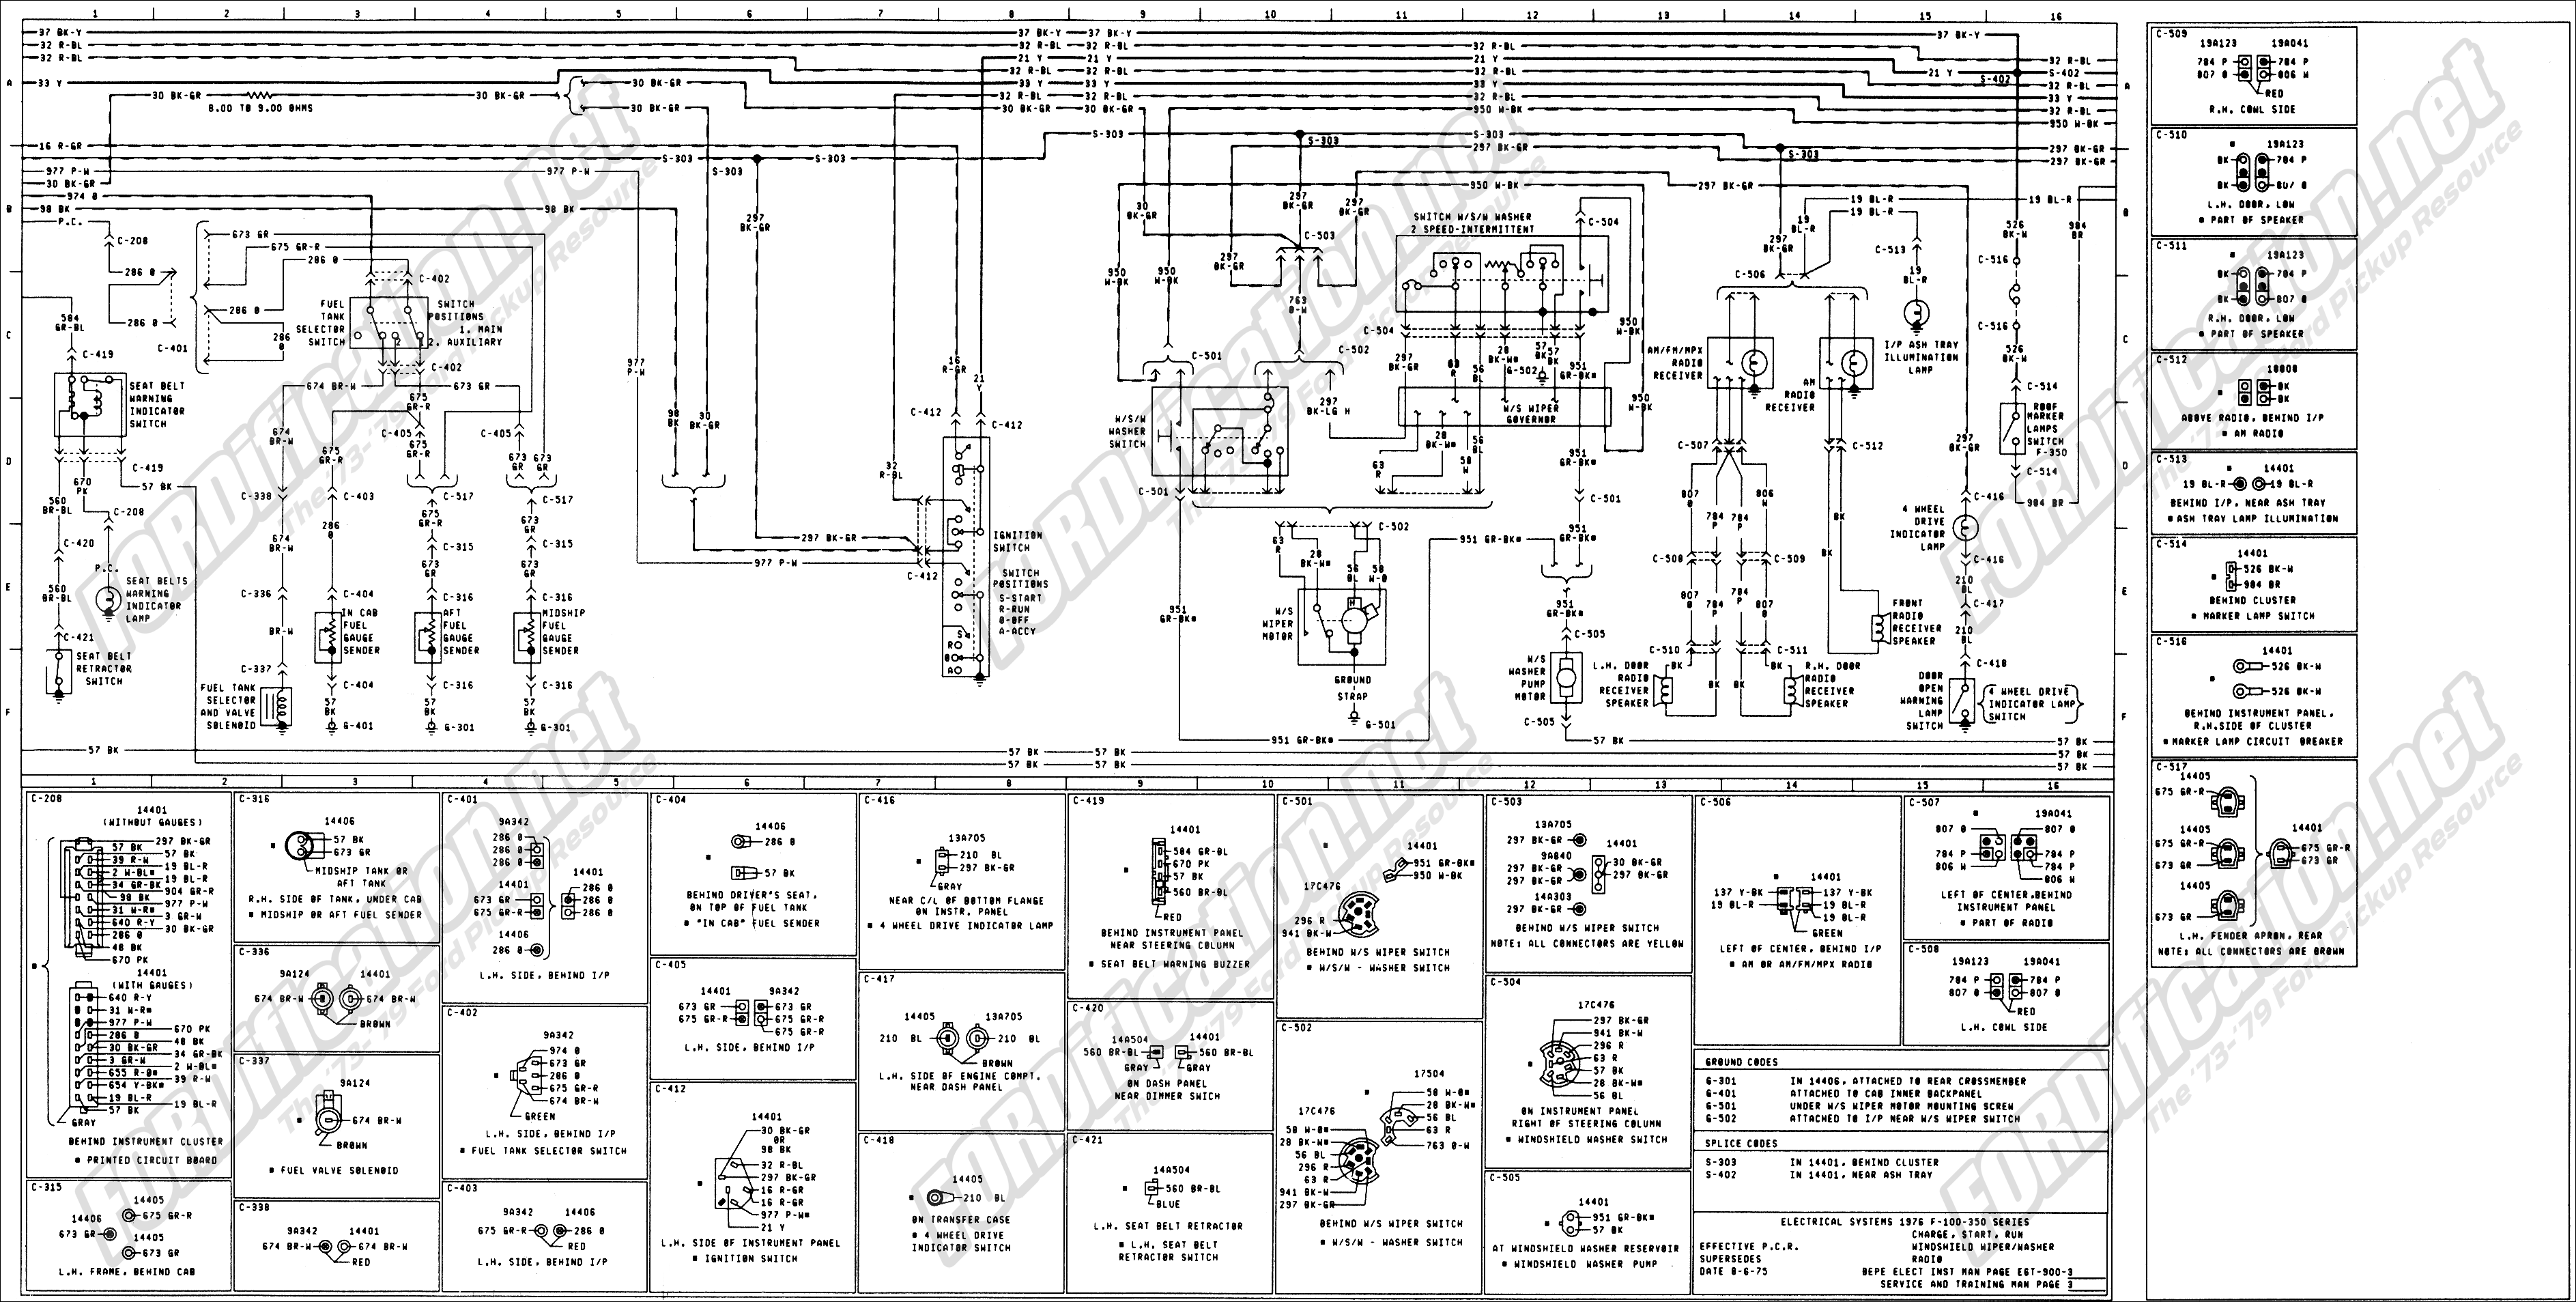 wiring_76master_3of9 1973 1979 ford truck wiring diagrams & schematics fordification net 2004 ford expedition trailer wiring diagram at fashall.co